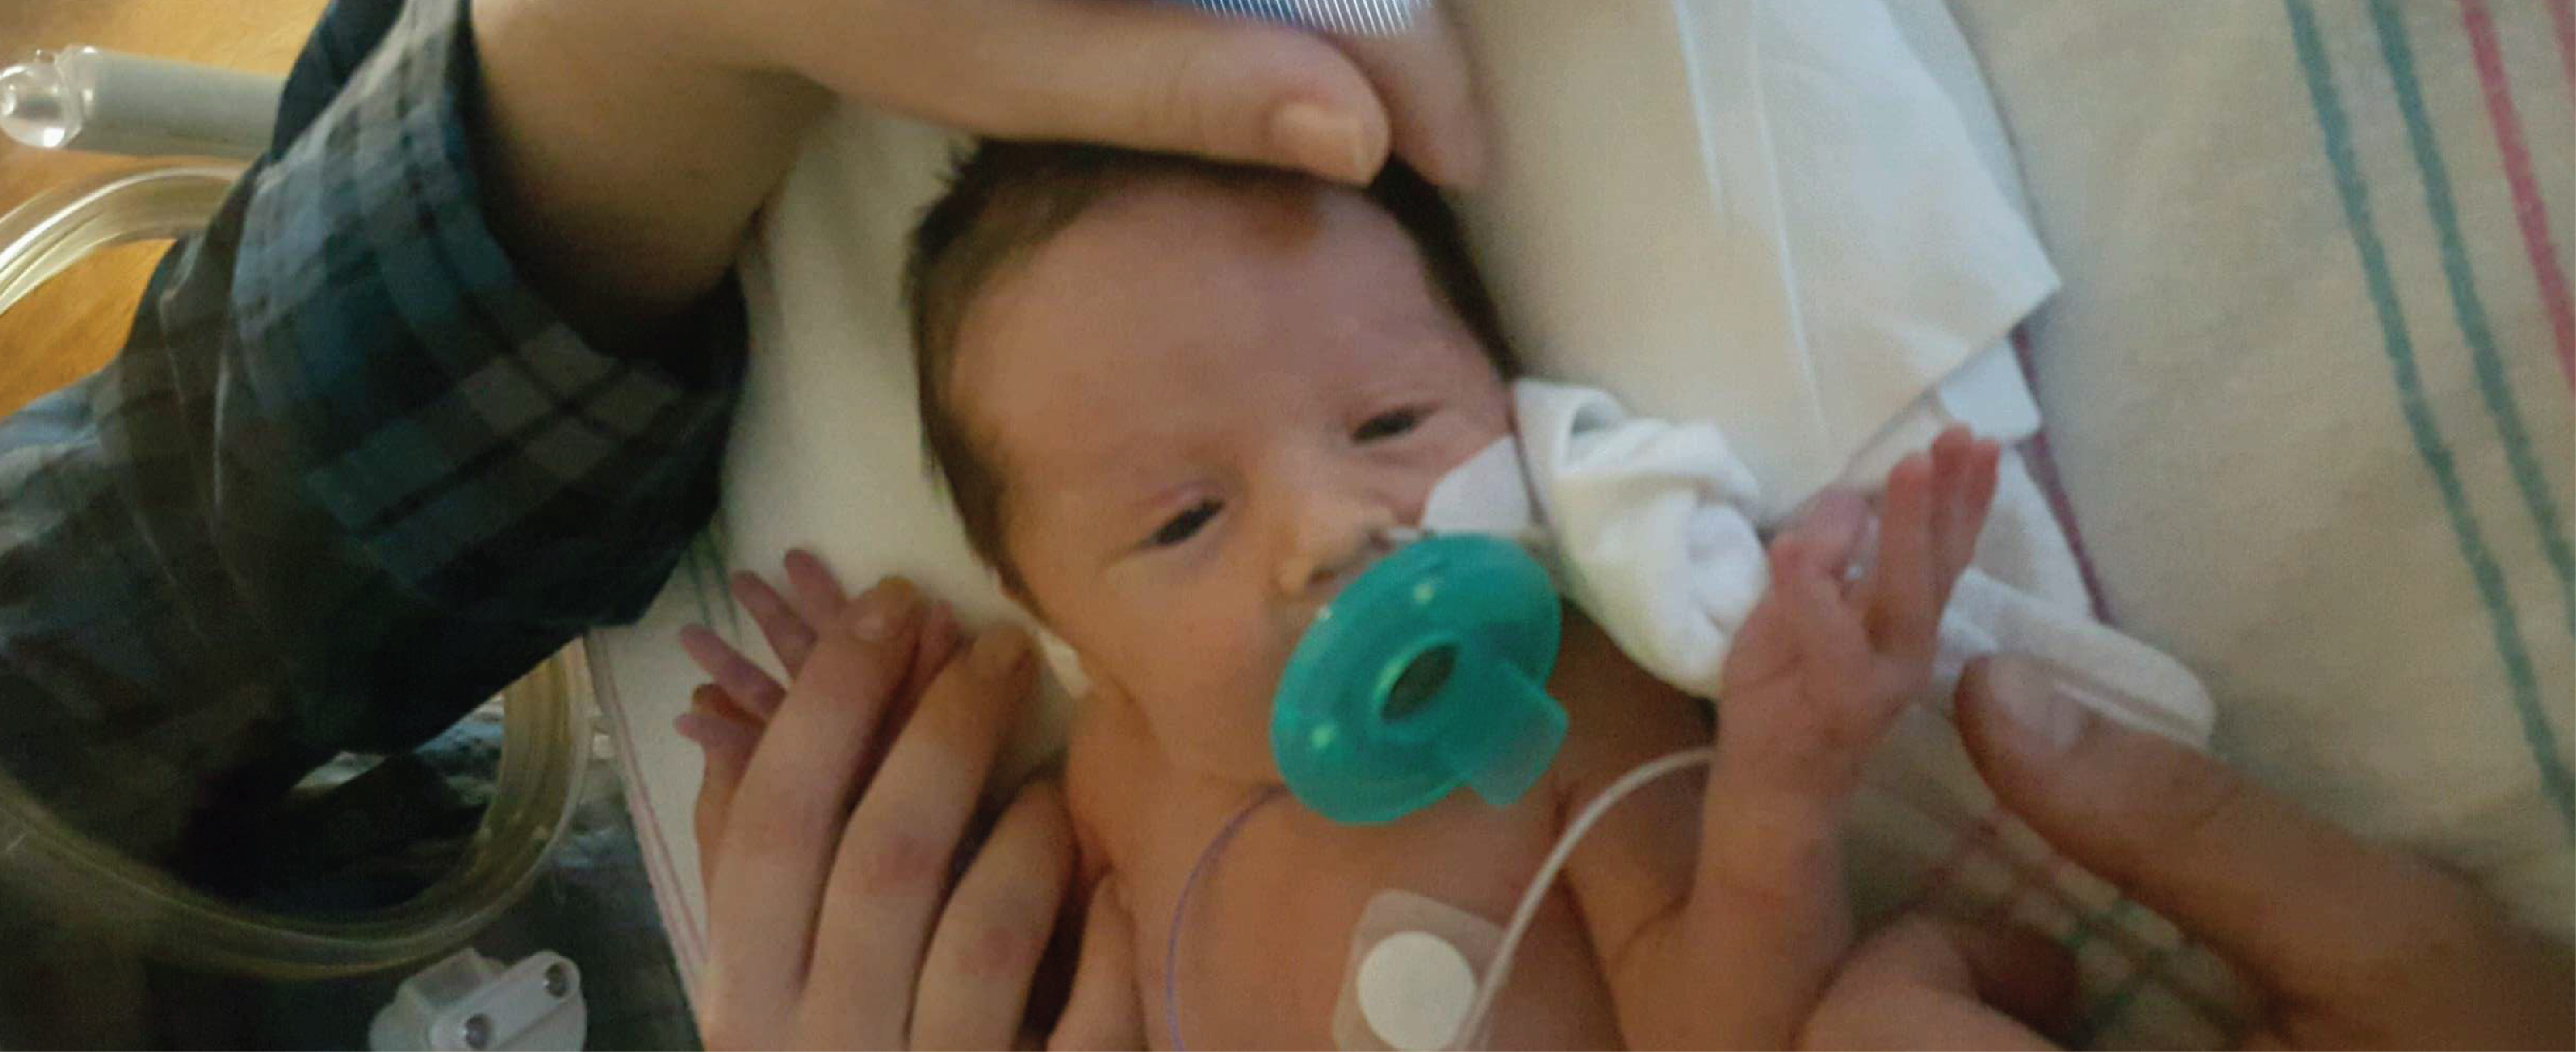 Baby in hospital with wires attached to chest and sucking on pacifier and with an adult arm above her